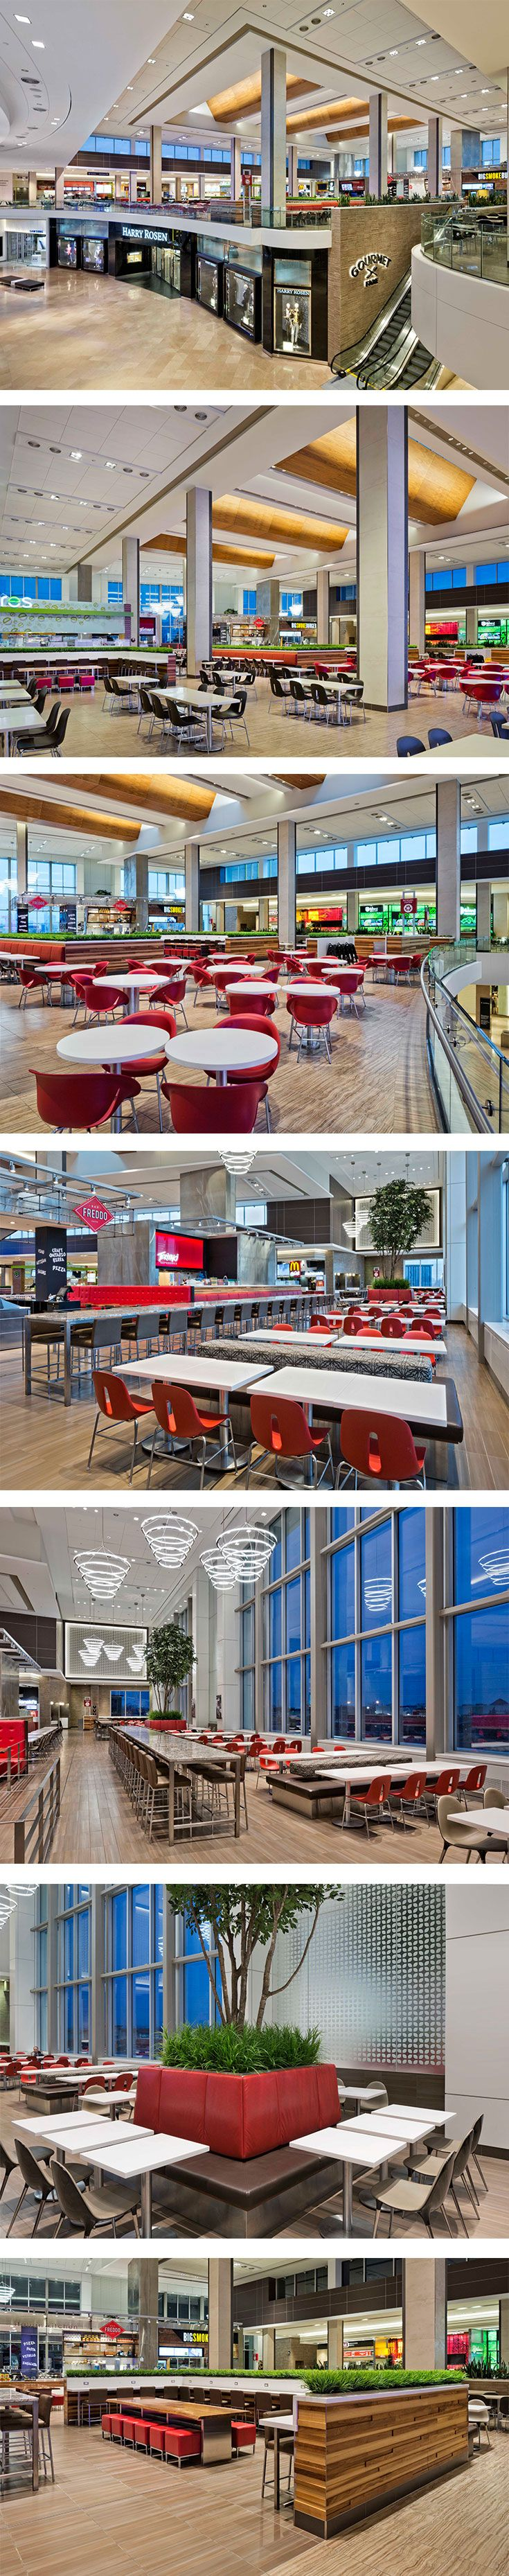 Sherway Gardens Food Court in Toronto, ON - designed by GH+A (in collaboration with Dialog)